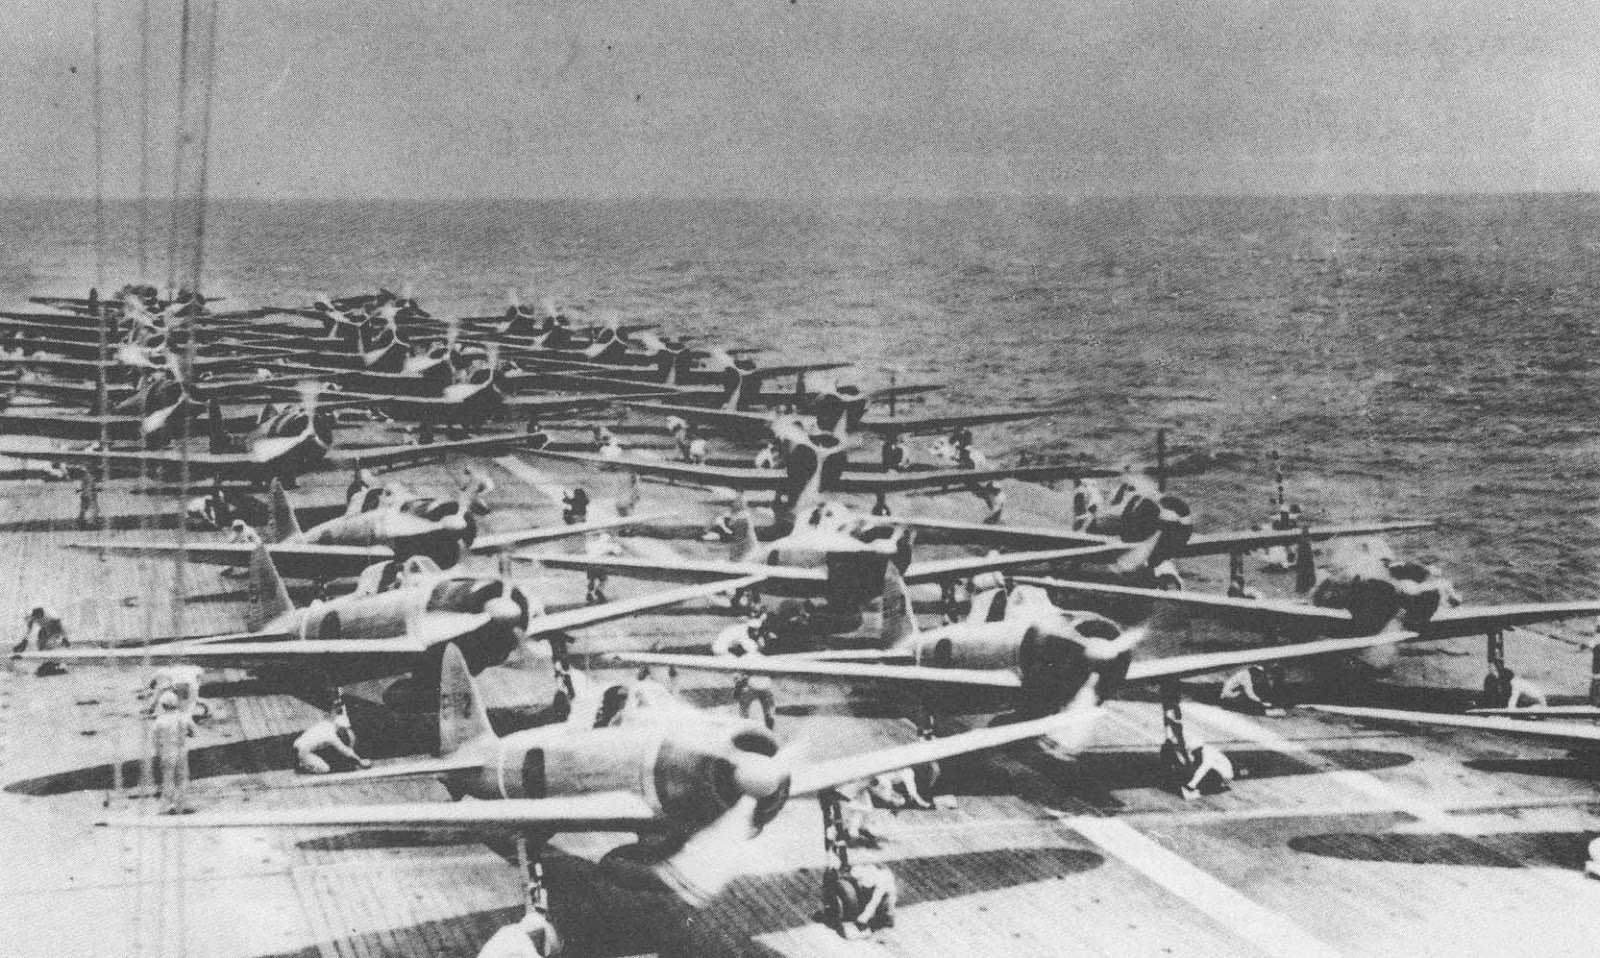 First wave of aircraft bound for Pearl Harbor readies to launch from Japanese carrier Shokaku. (Photo: Japanese Ministry of Defense Archives)